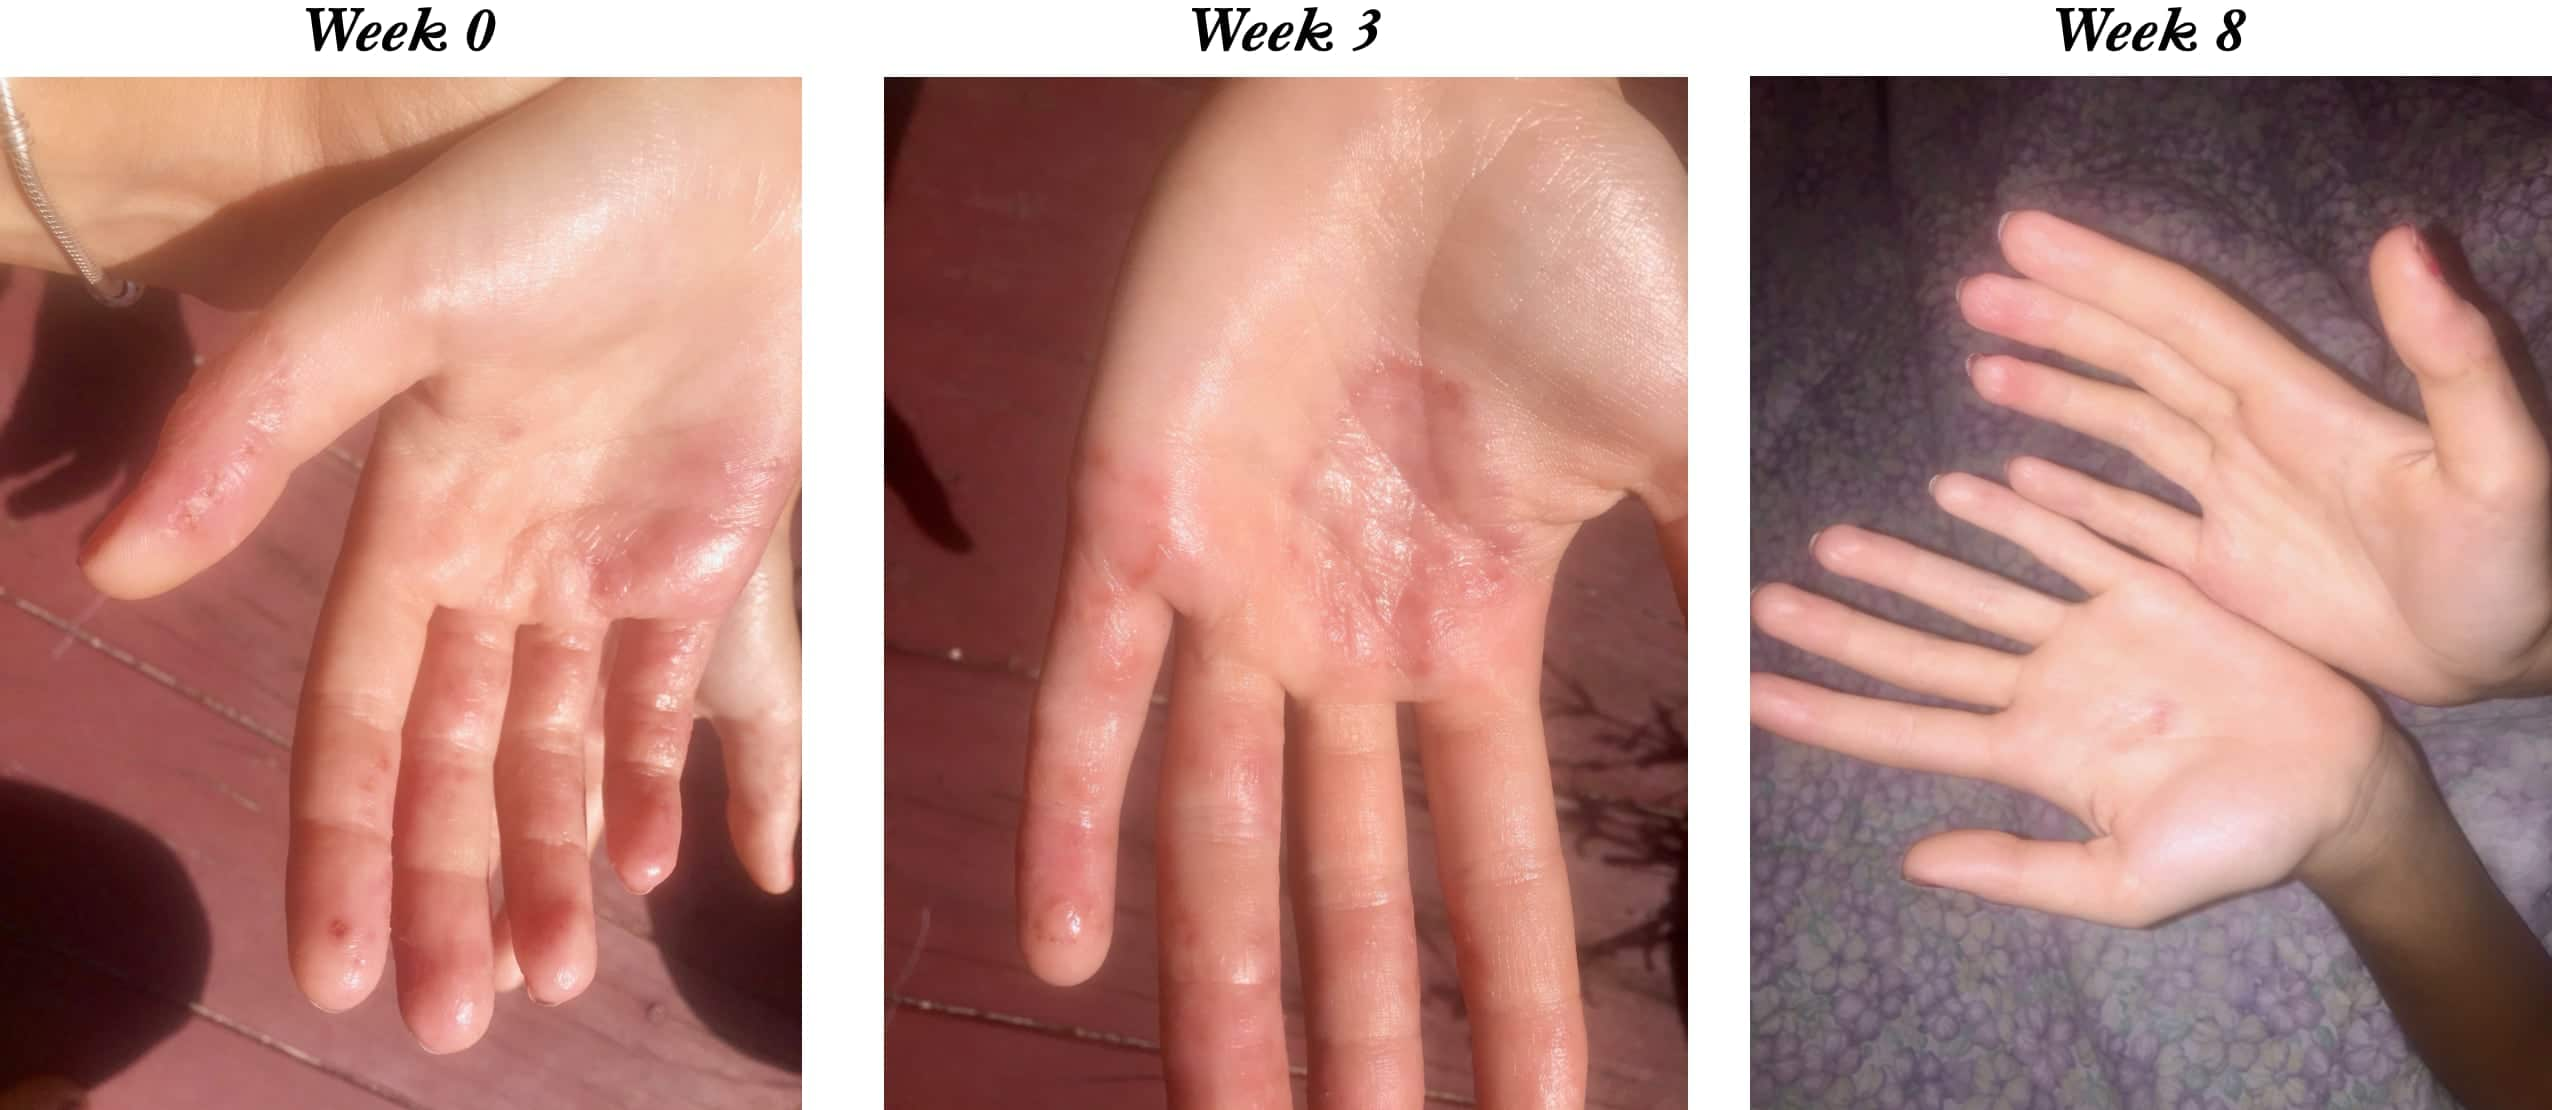 Neutral Skin Saver Eczema Result